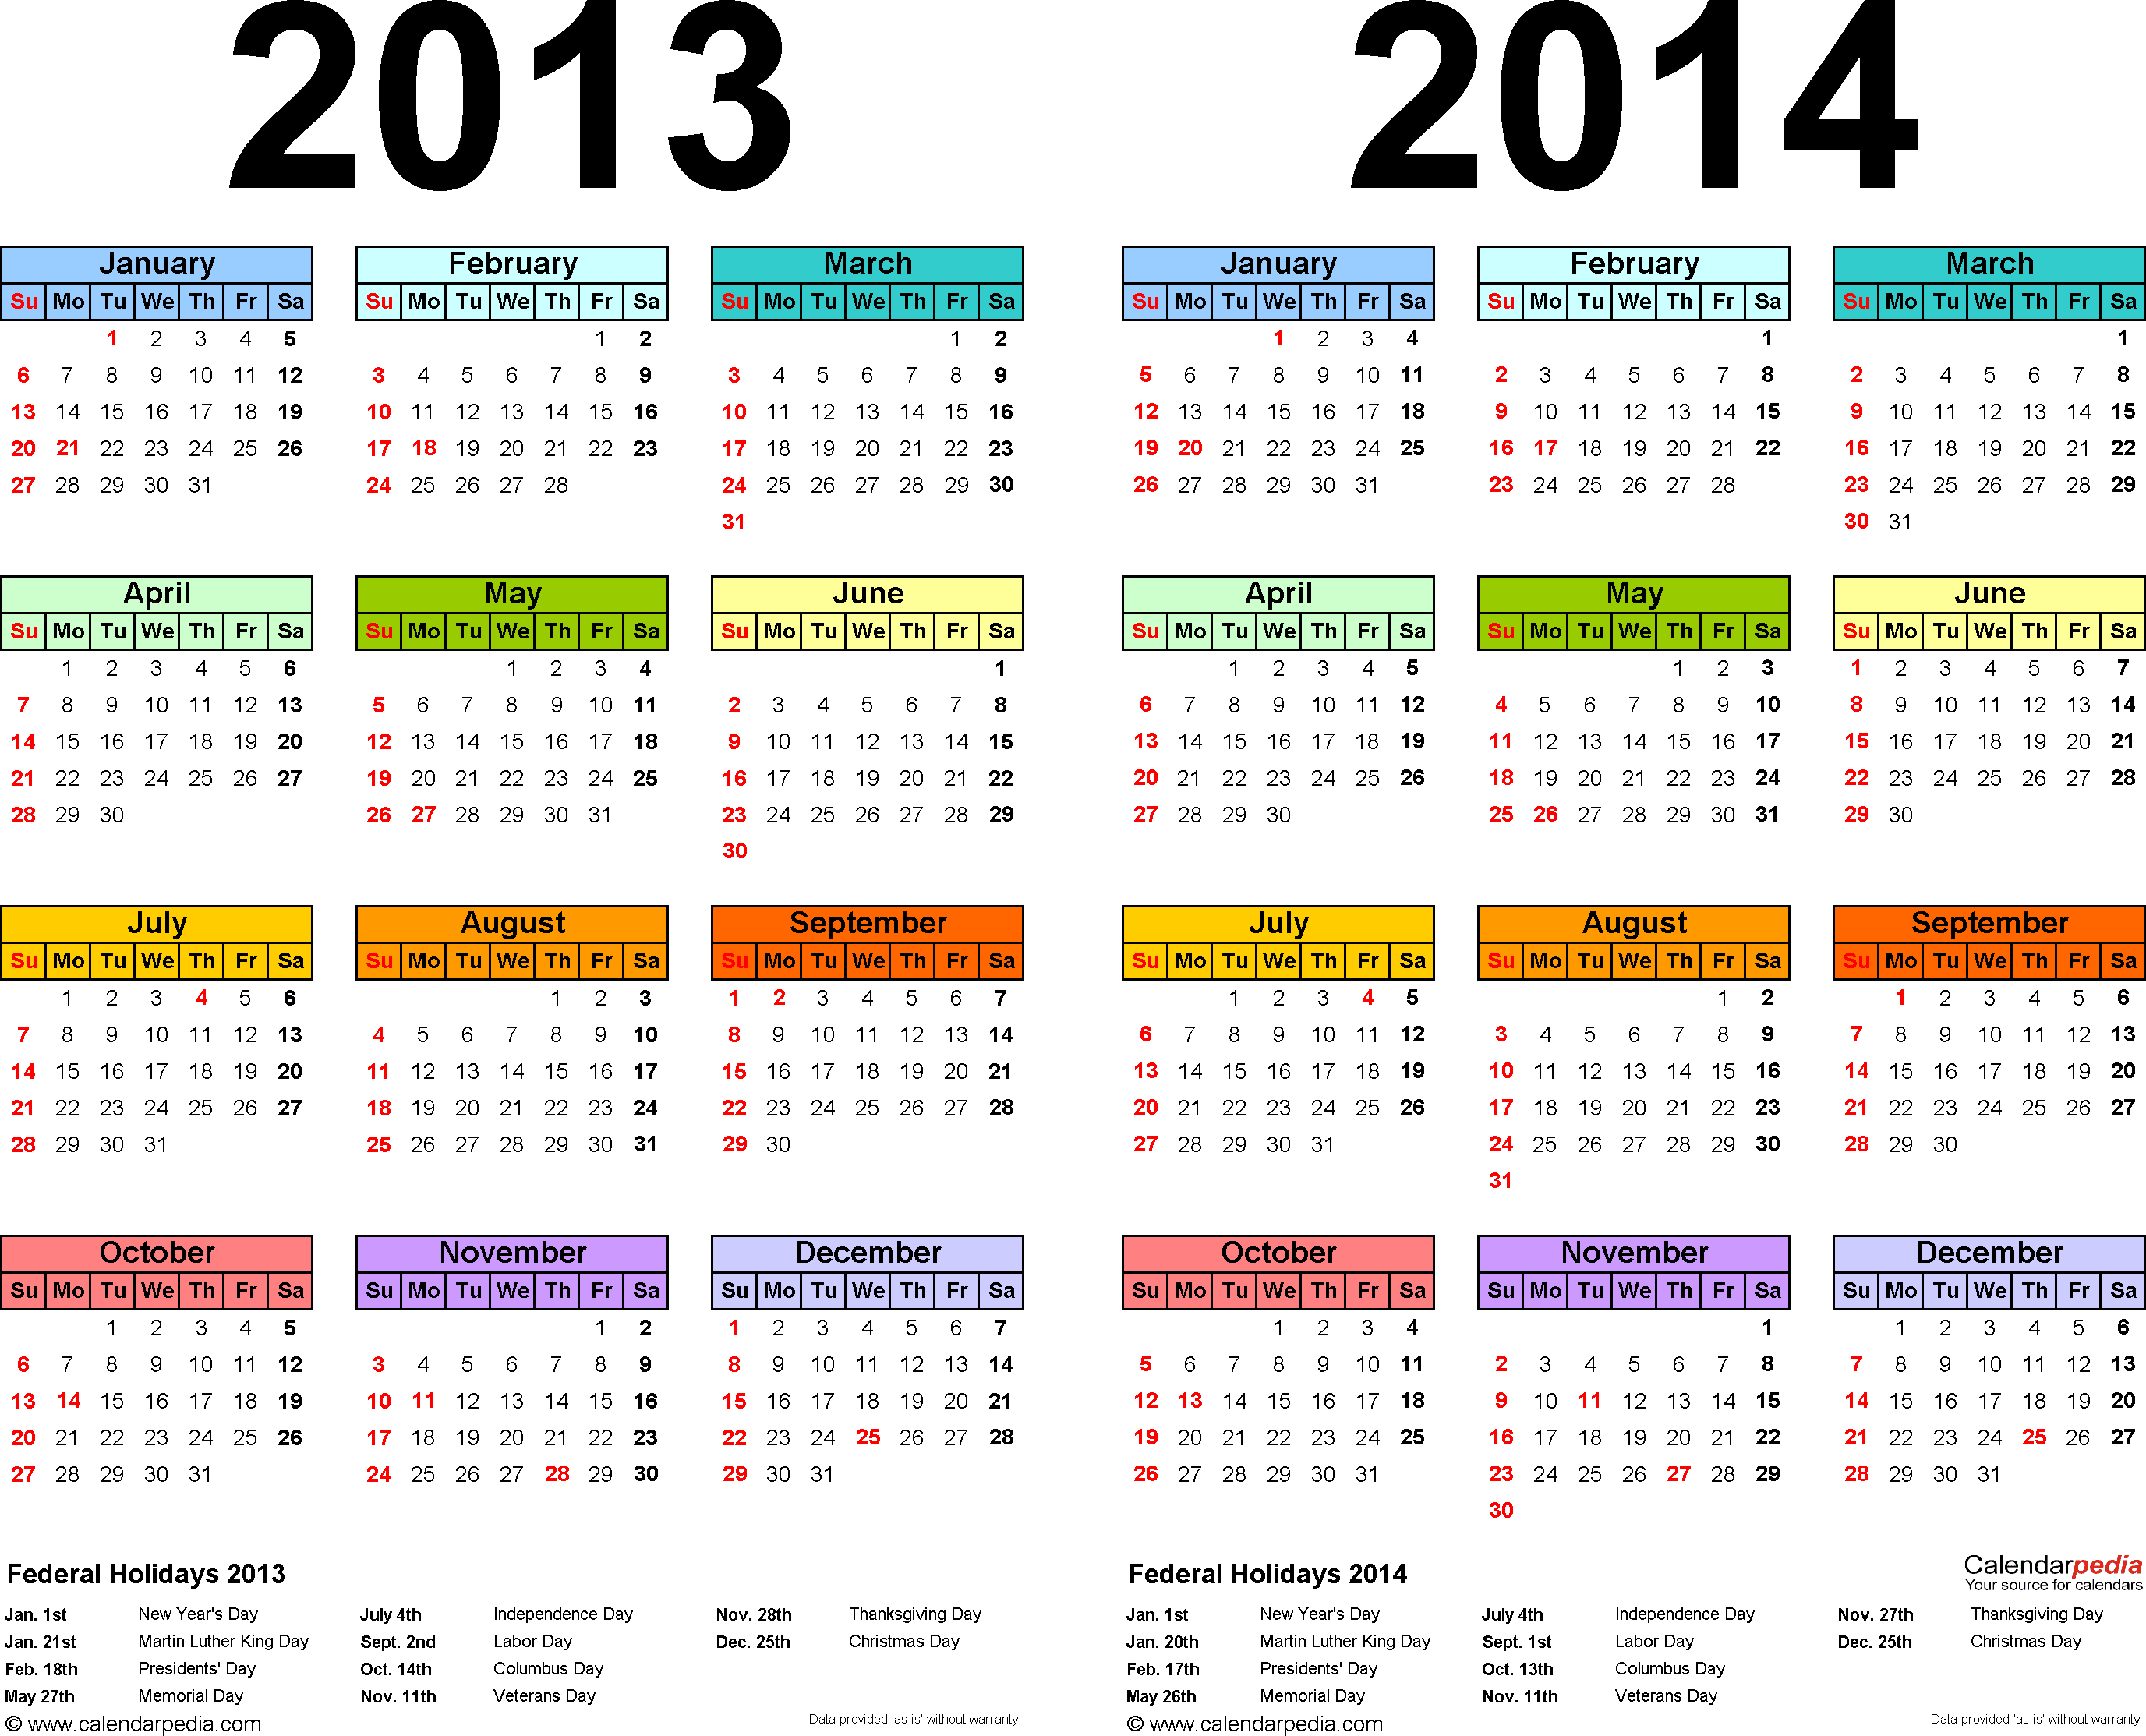 Template 1: PDF template for two year calendar 2013/2014 (landscape orientation, 1 page, in color)